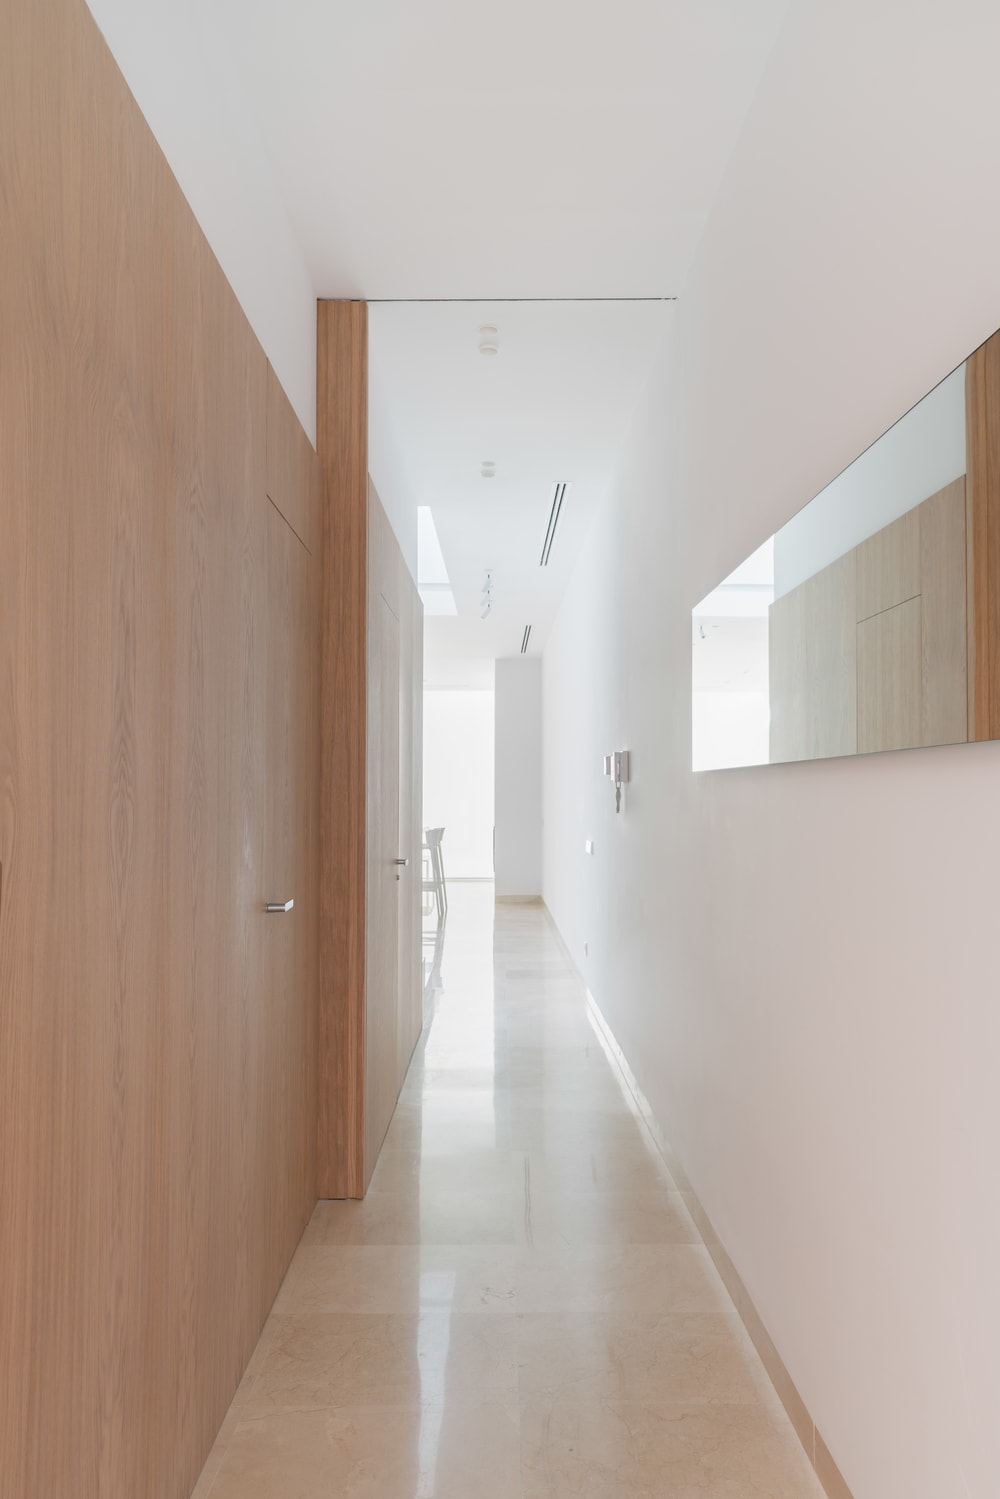 This is the hallway of the house with a lovely wooden sliding door in the middle to match the sliding panel of the window on the side of the hallway.